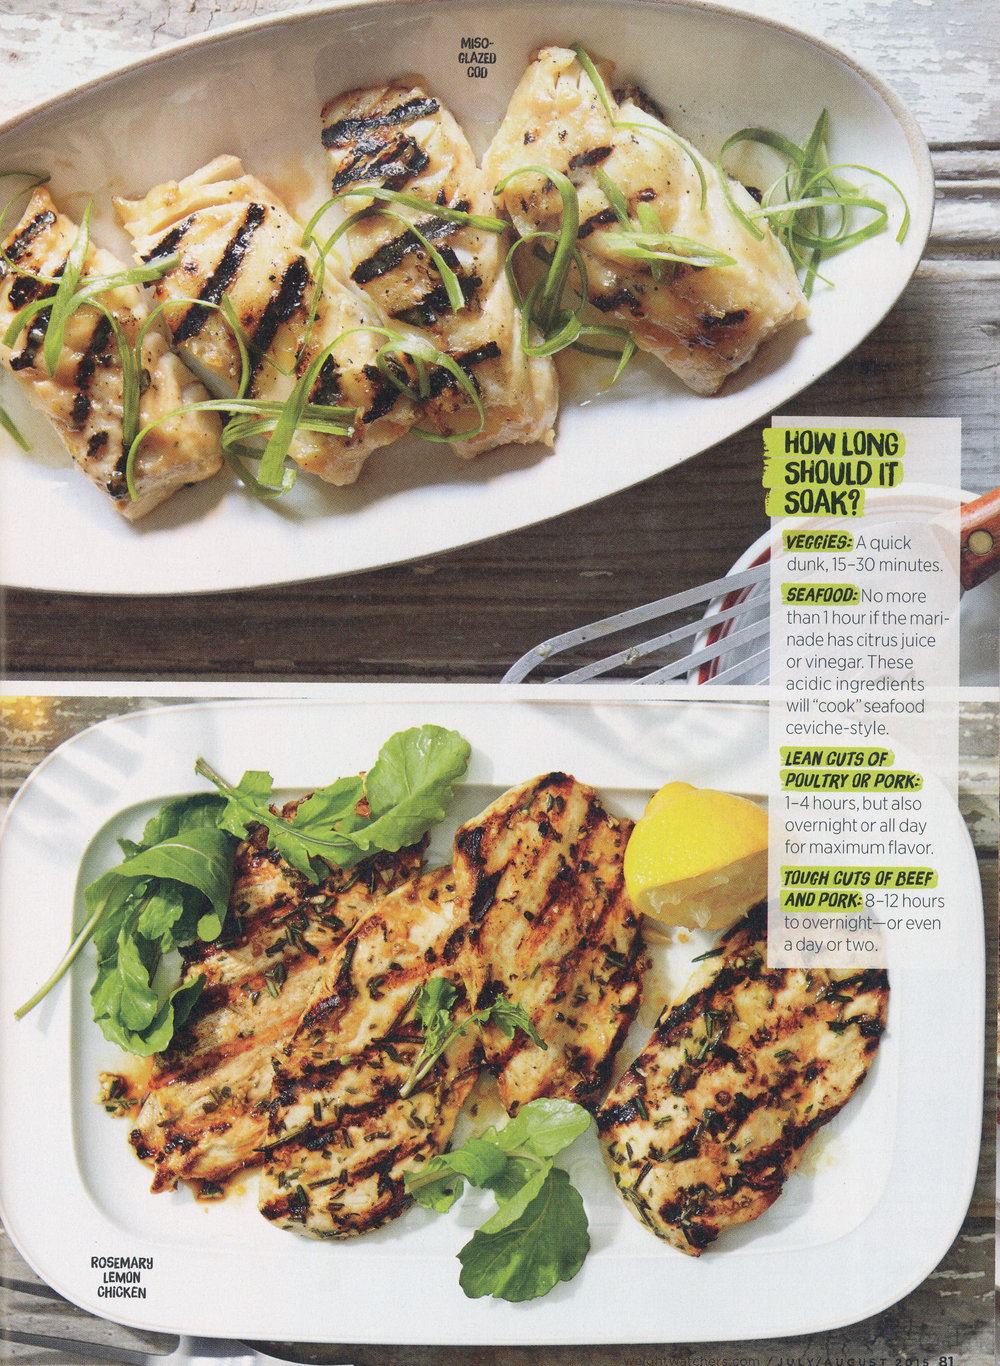 miso cod and rosemary lemon grilled chicken pics.jpg